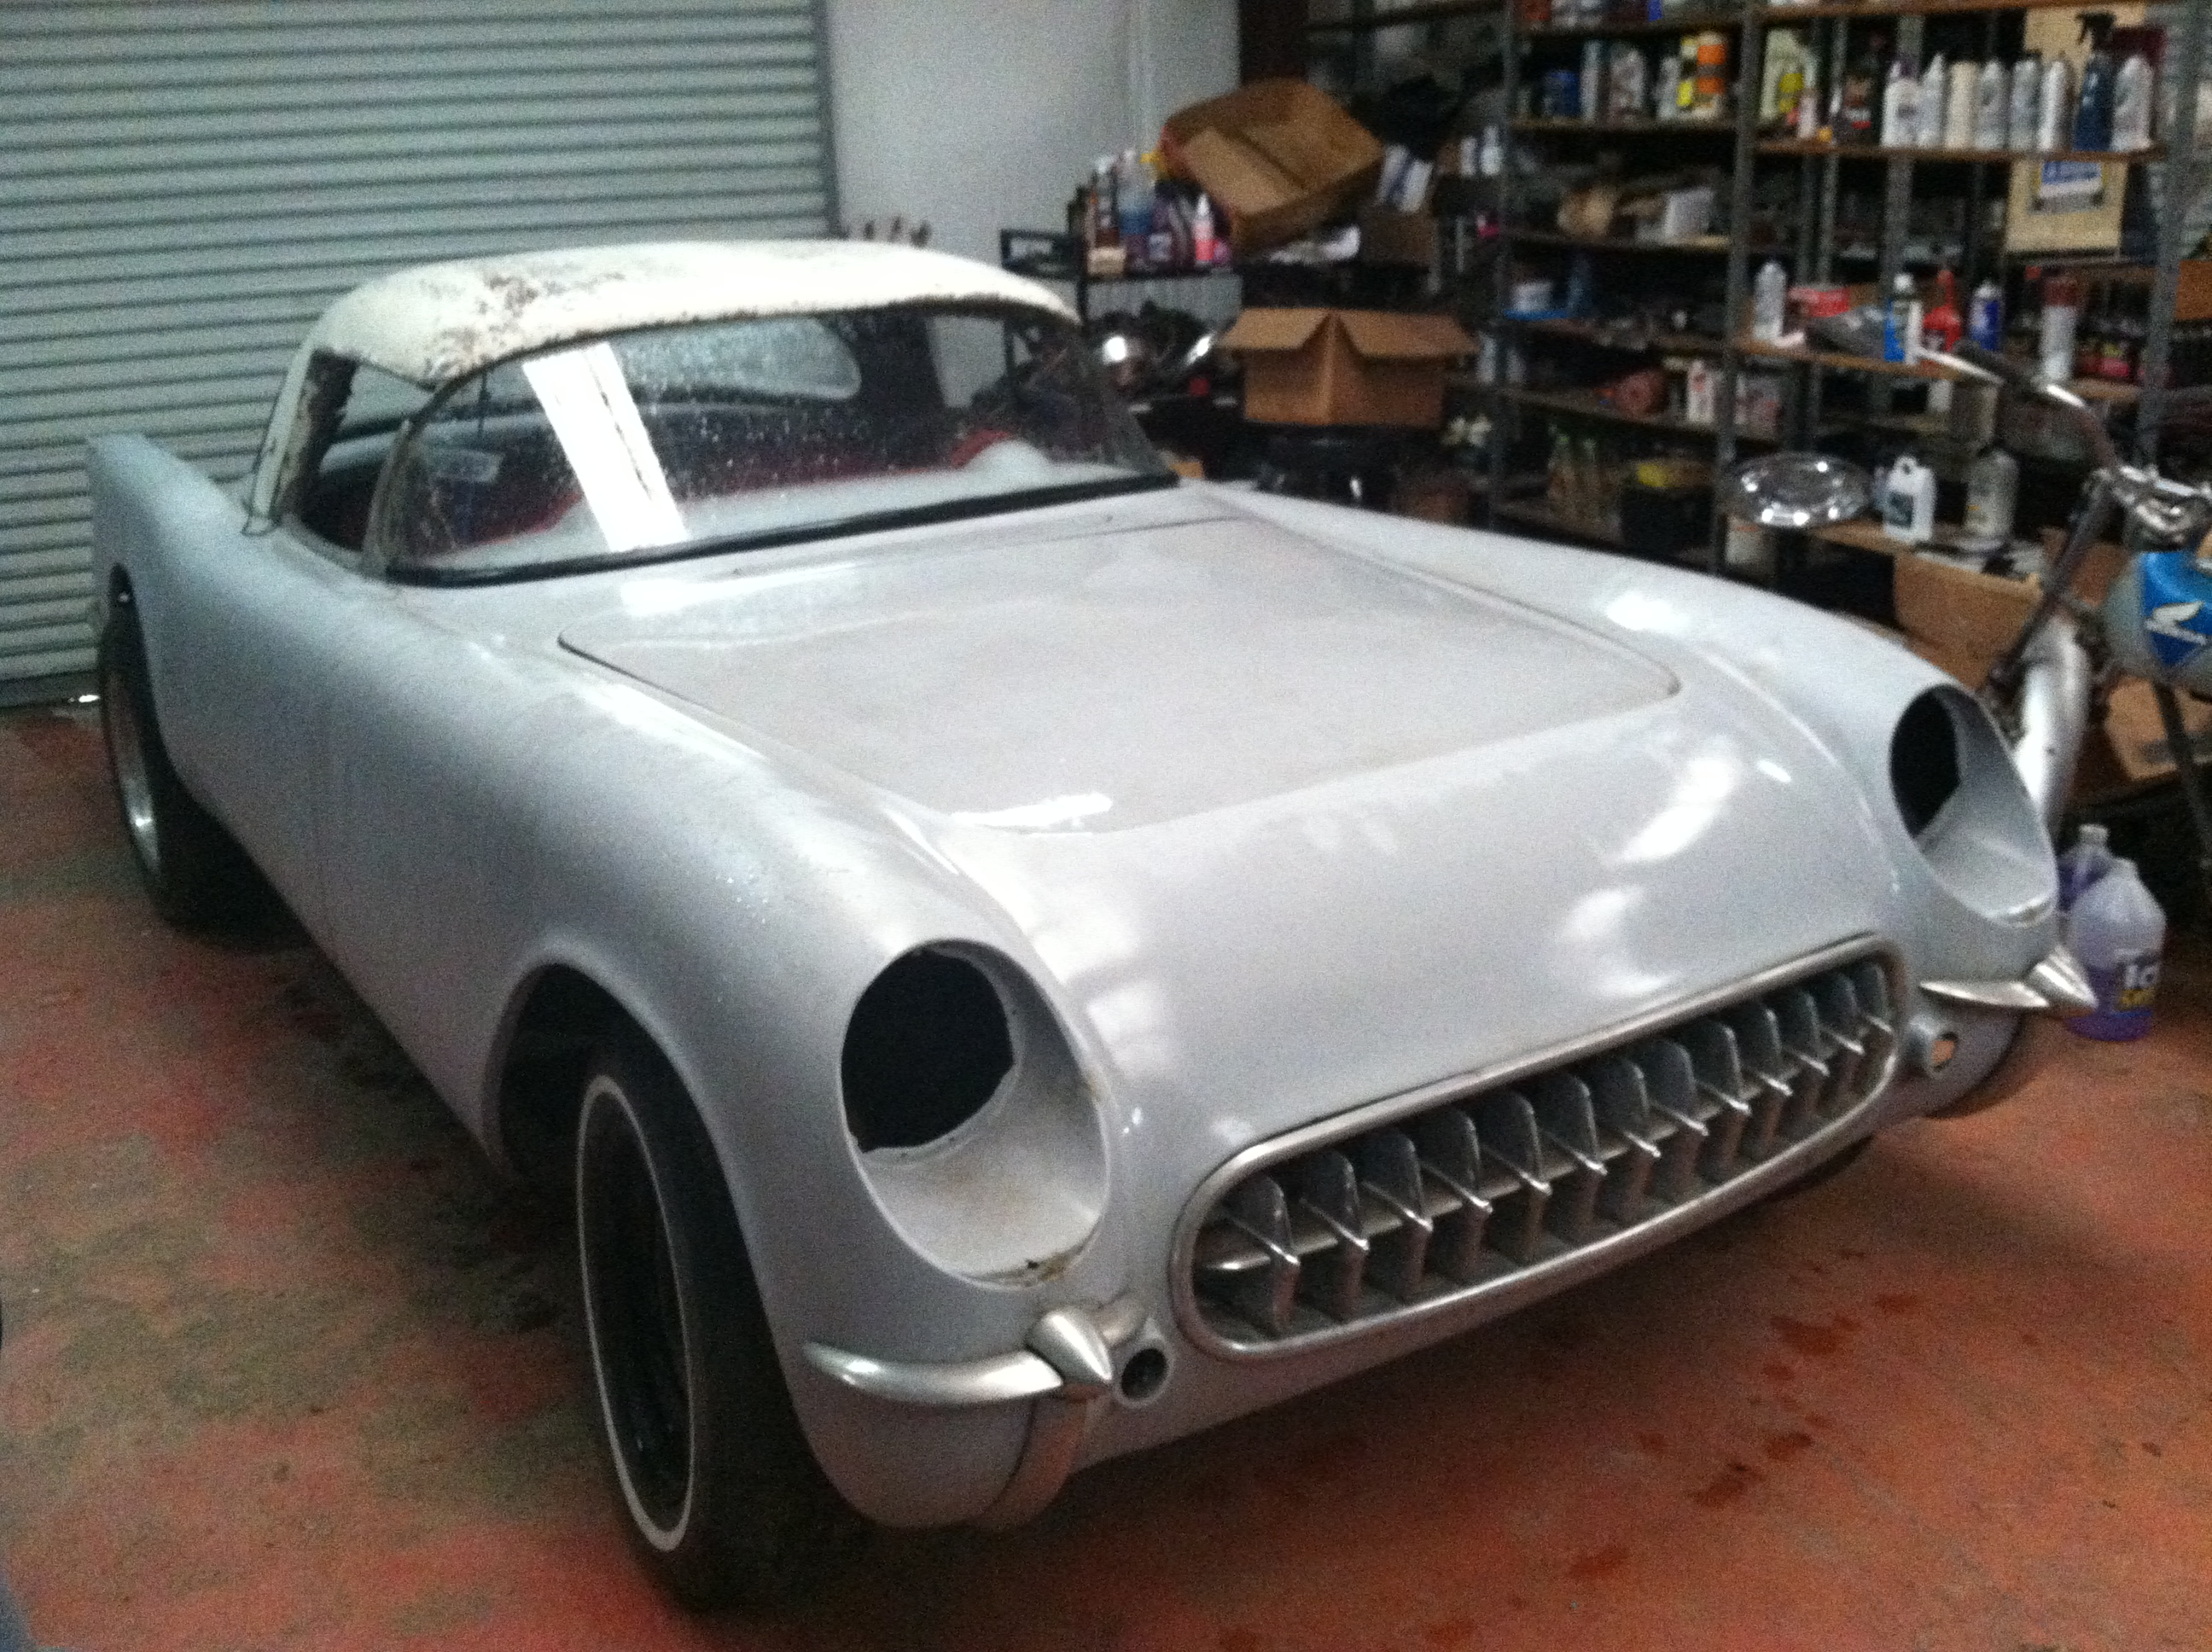 1953 Chevrolet Corvette Kit Car For Sale |